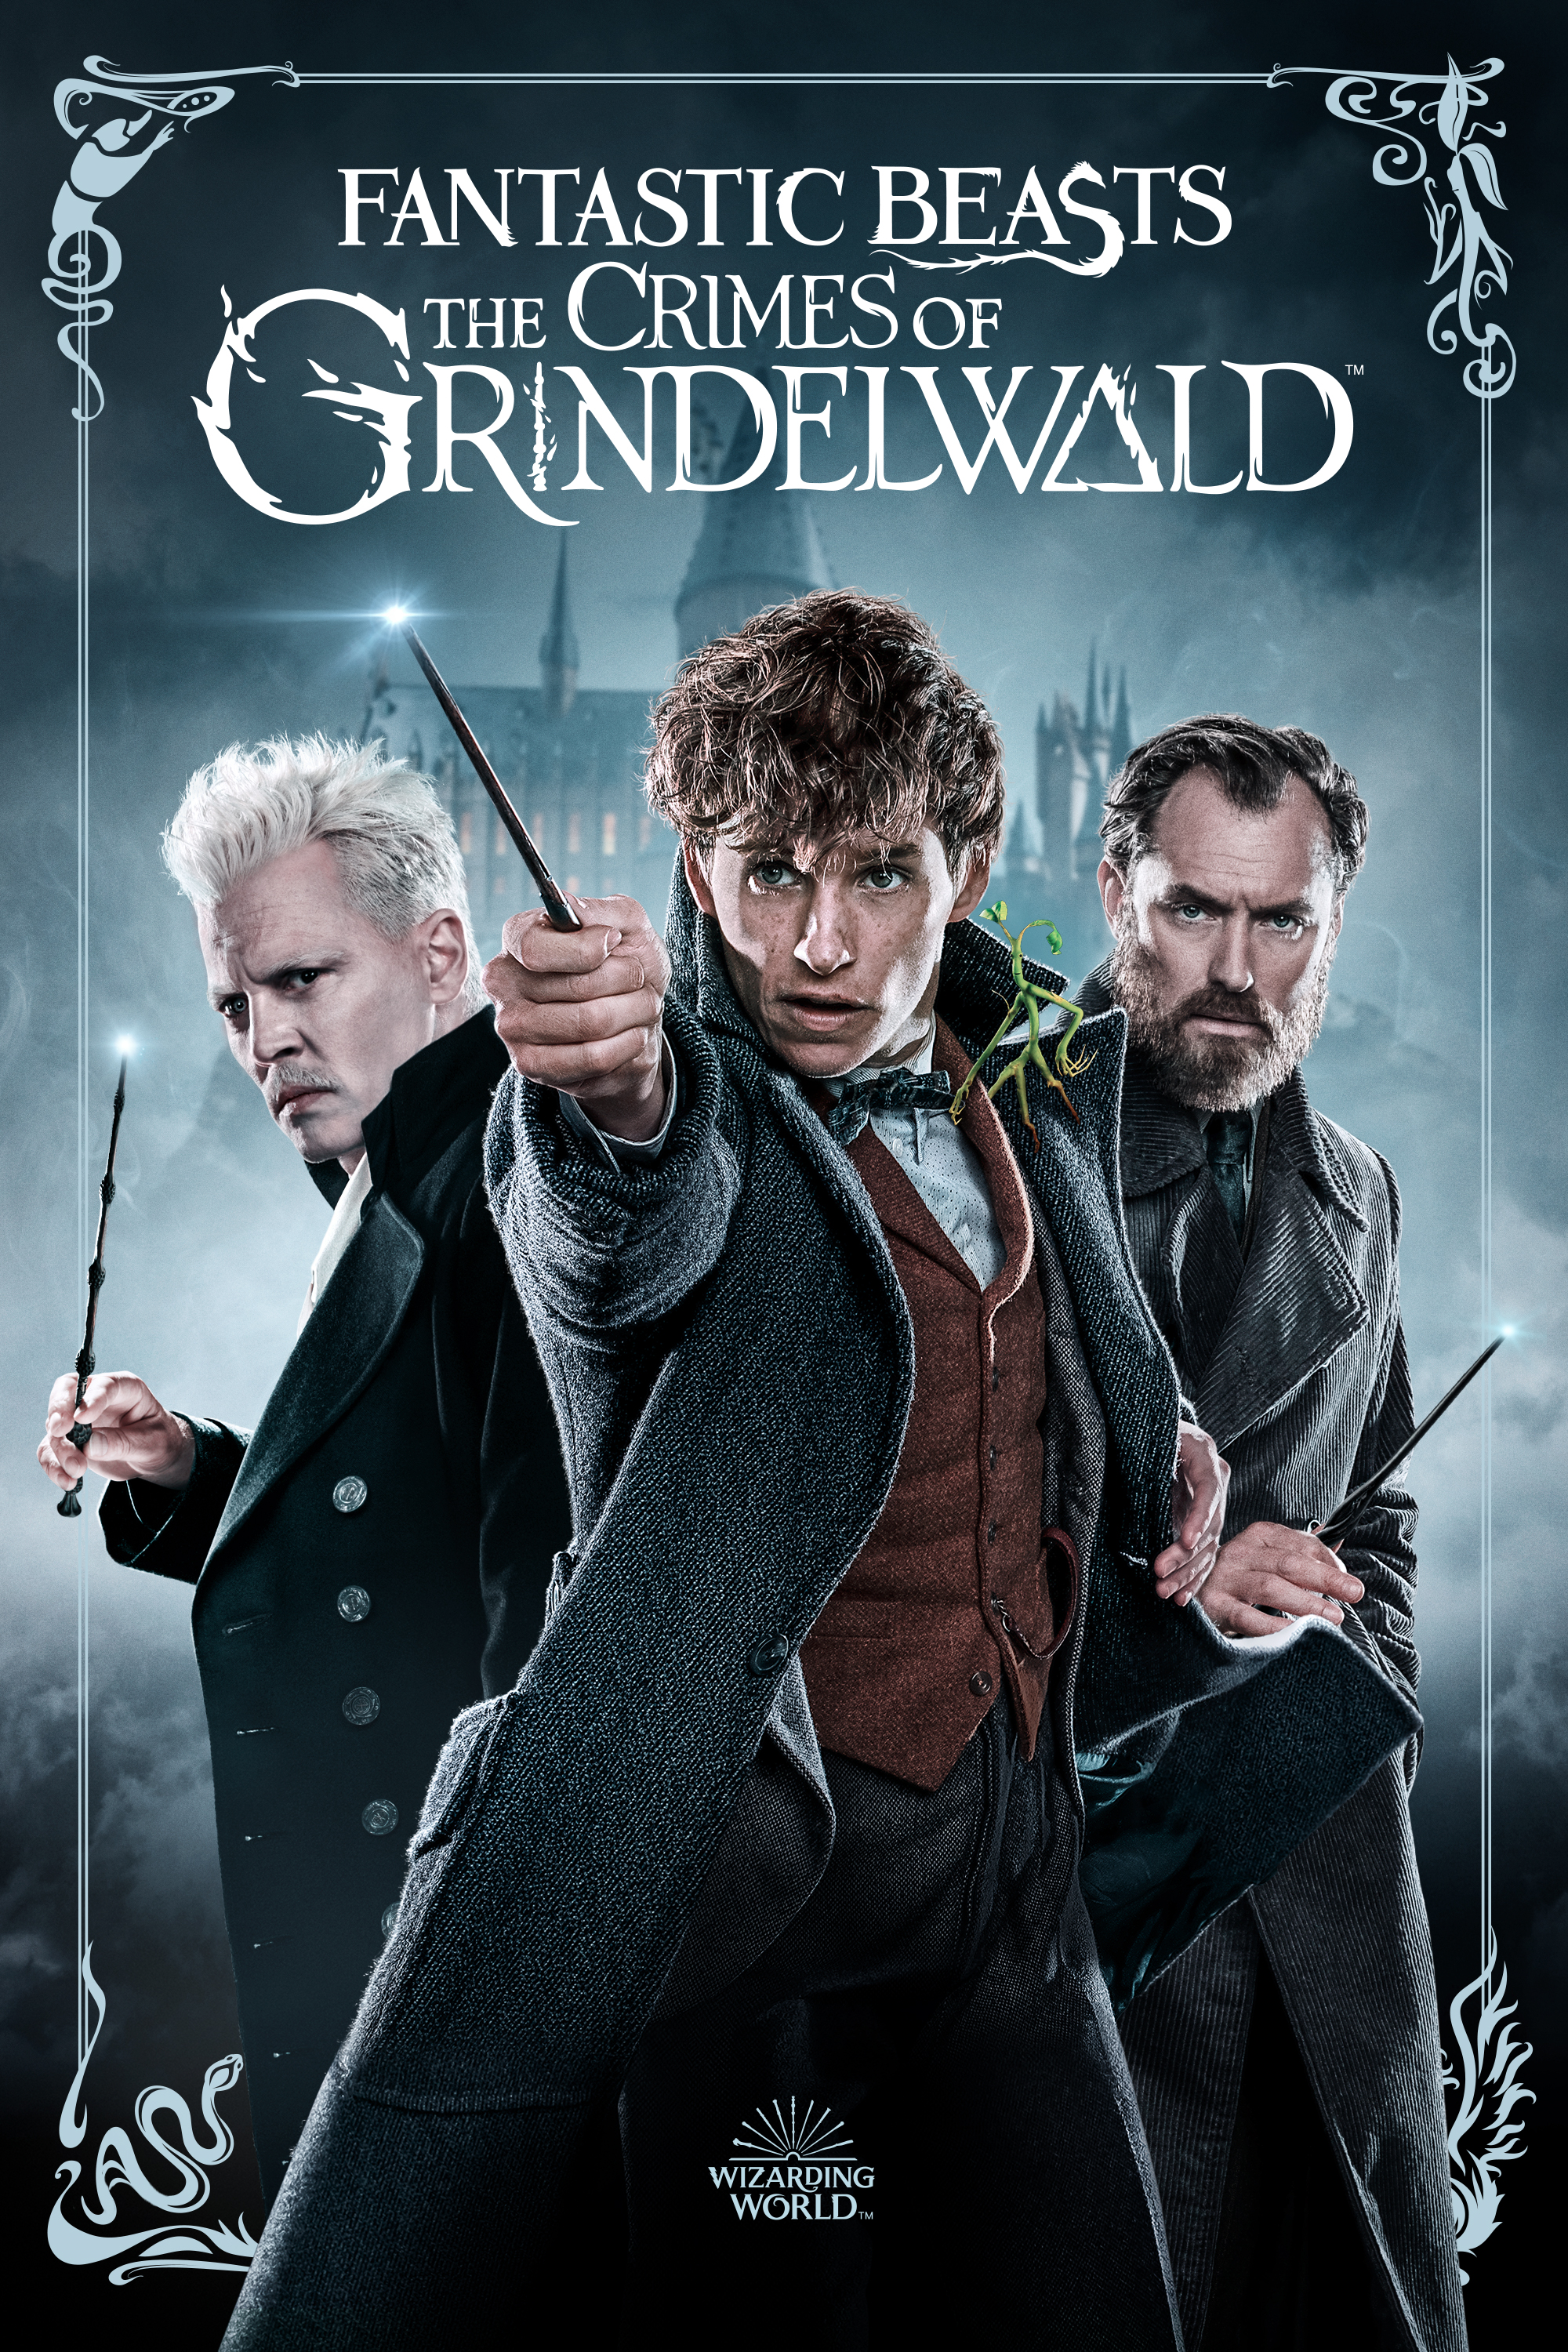 Movie poster image for FANTASTIC BEASTS: THE CRIMES OF GRINDELWALD